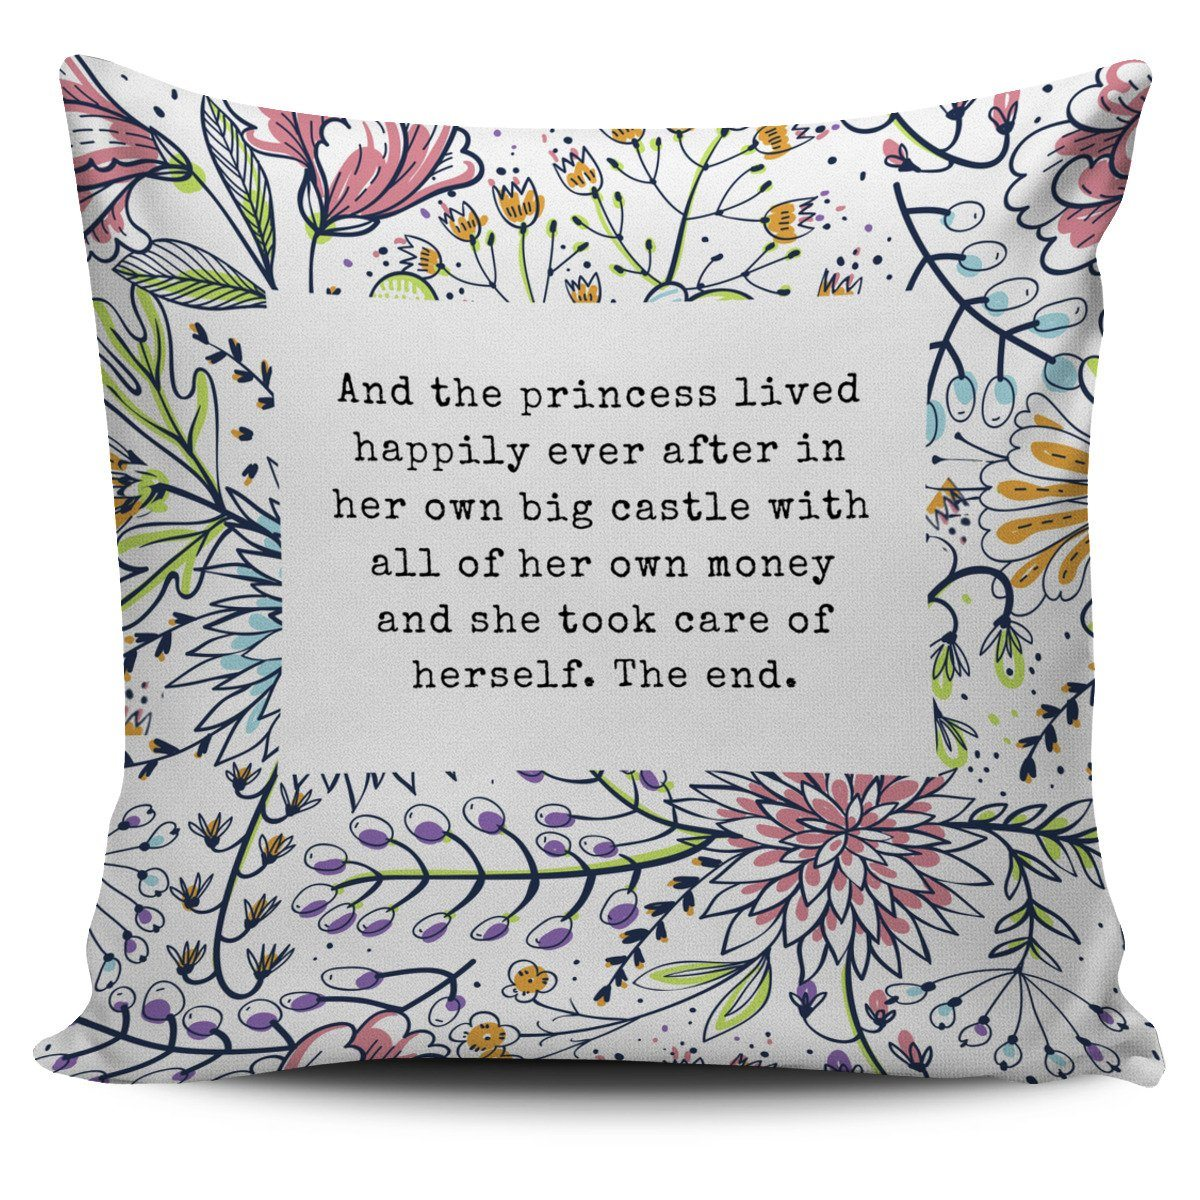 #FemPower Pillow Cover